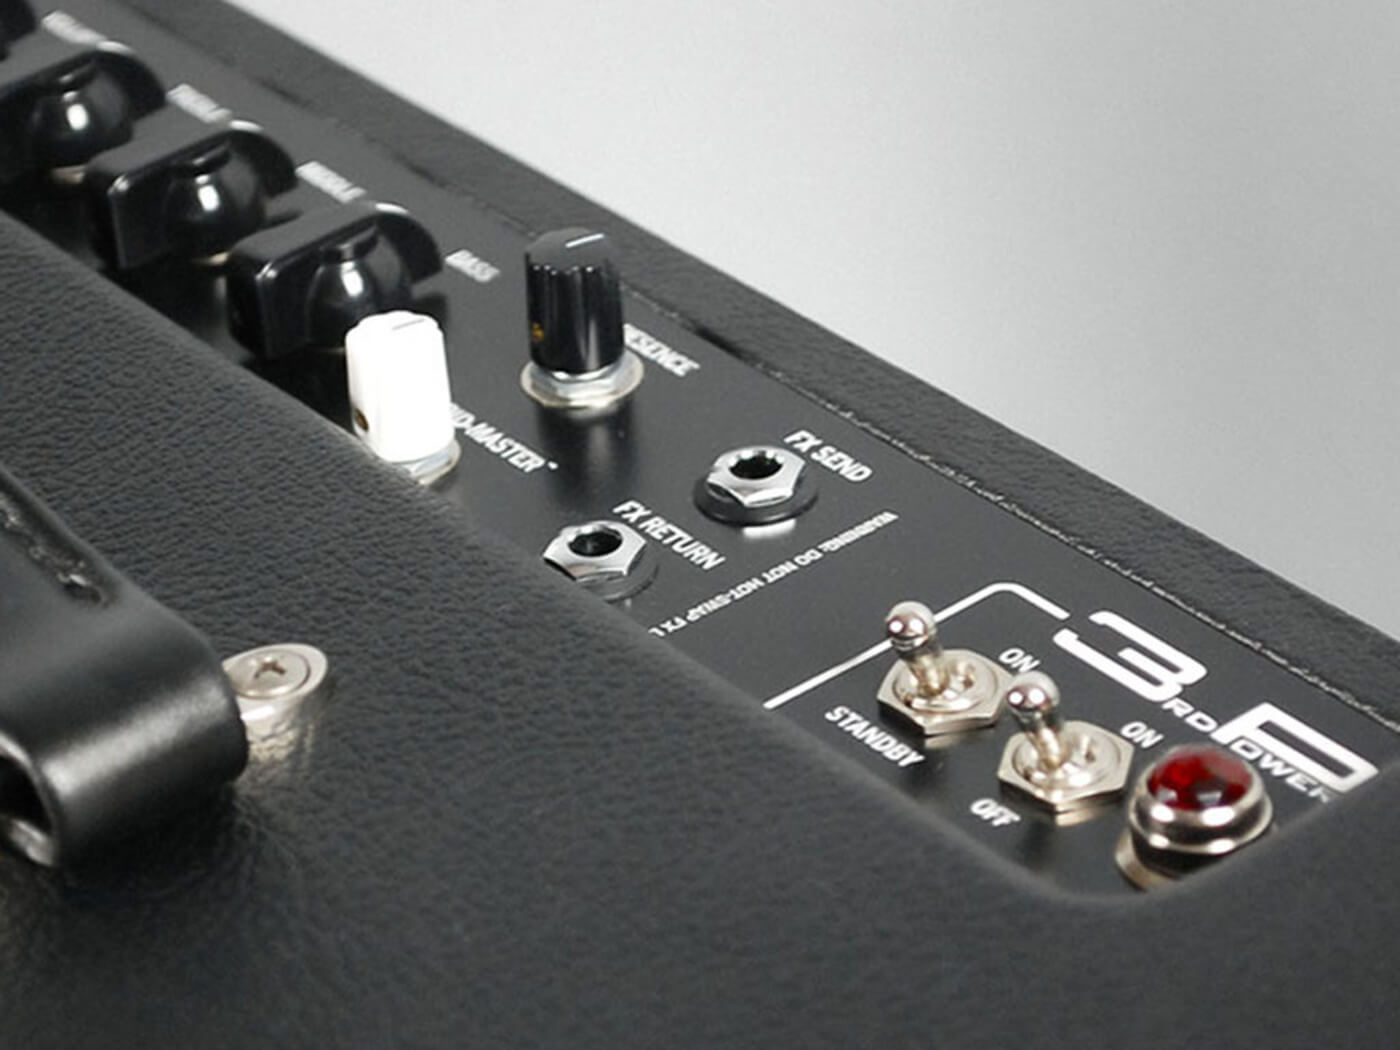 3rd Power amps dirty sink combo control panel